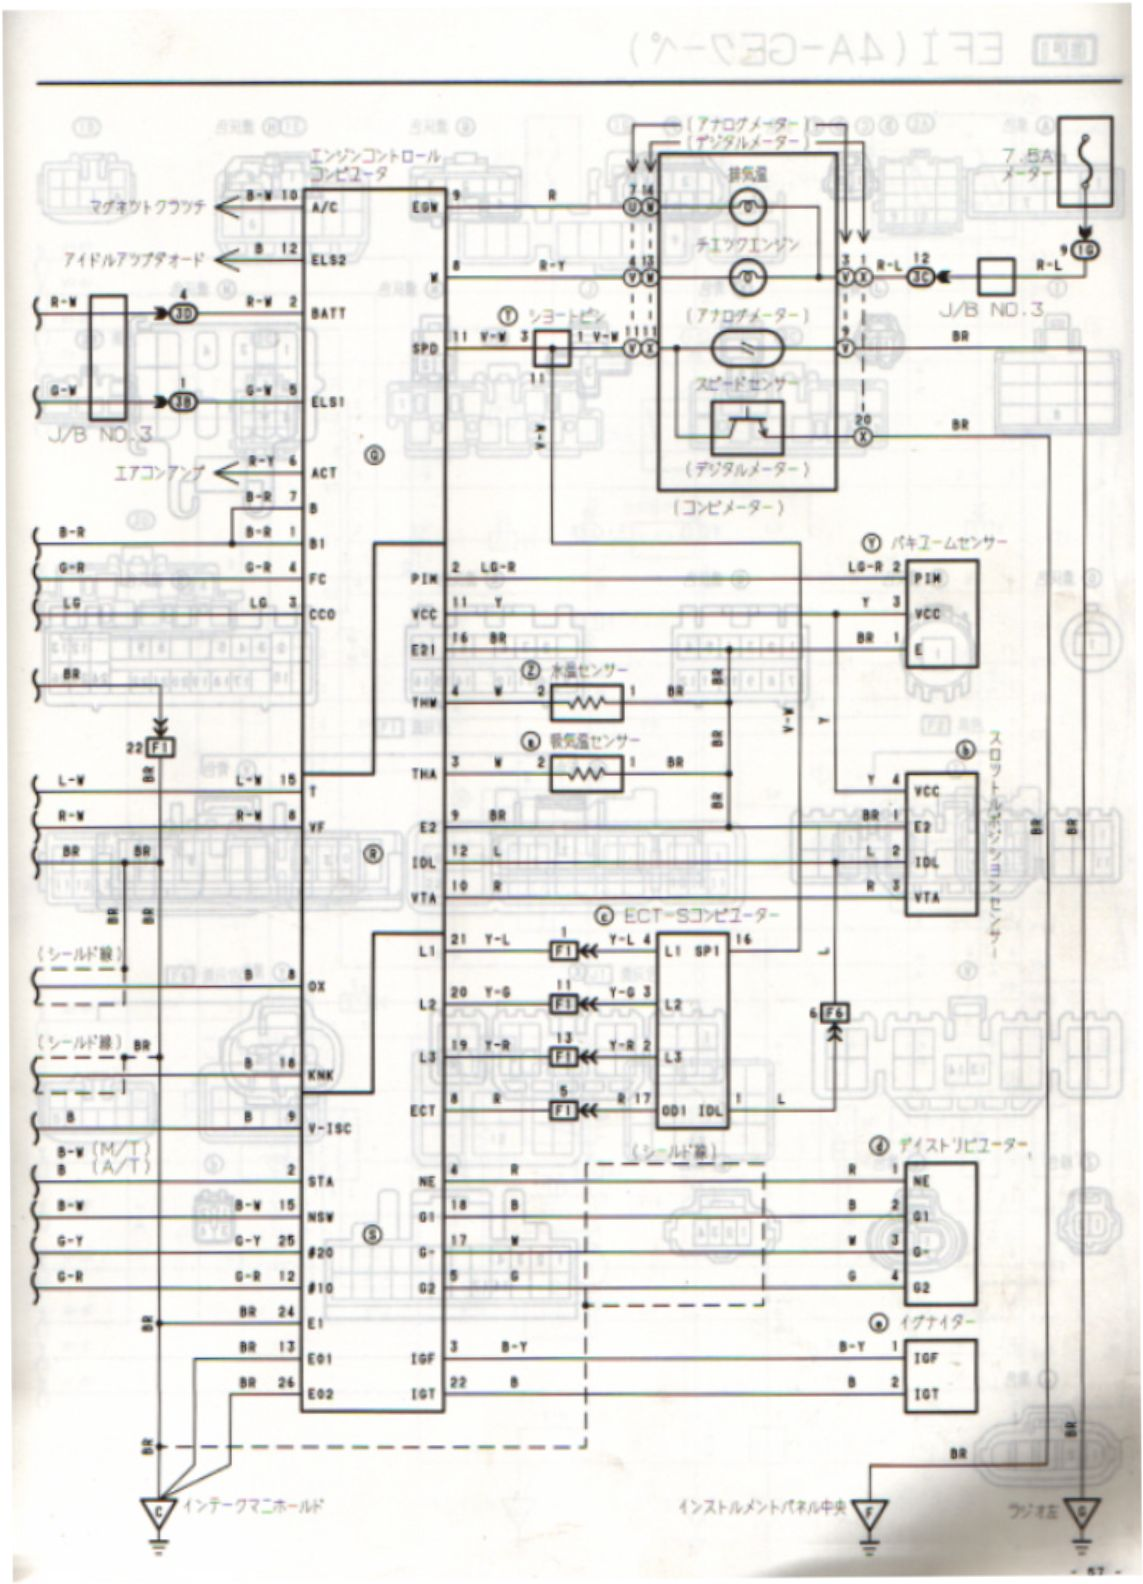 1989 Chrysler Lebaron Auto Wiring Diagram Schematic Electrical Polarity 1990 Library1990 Fuse Box Ae86